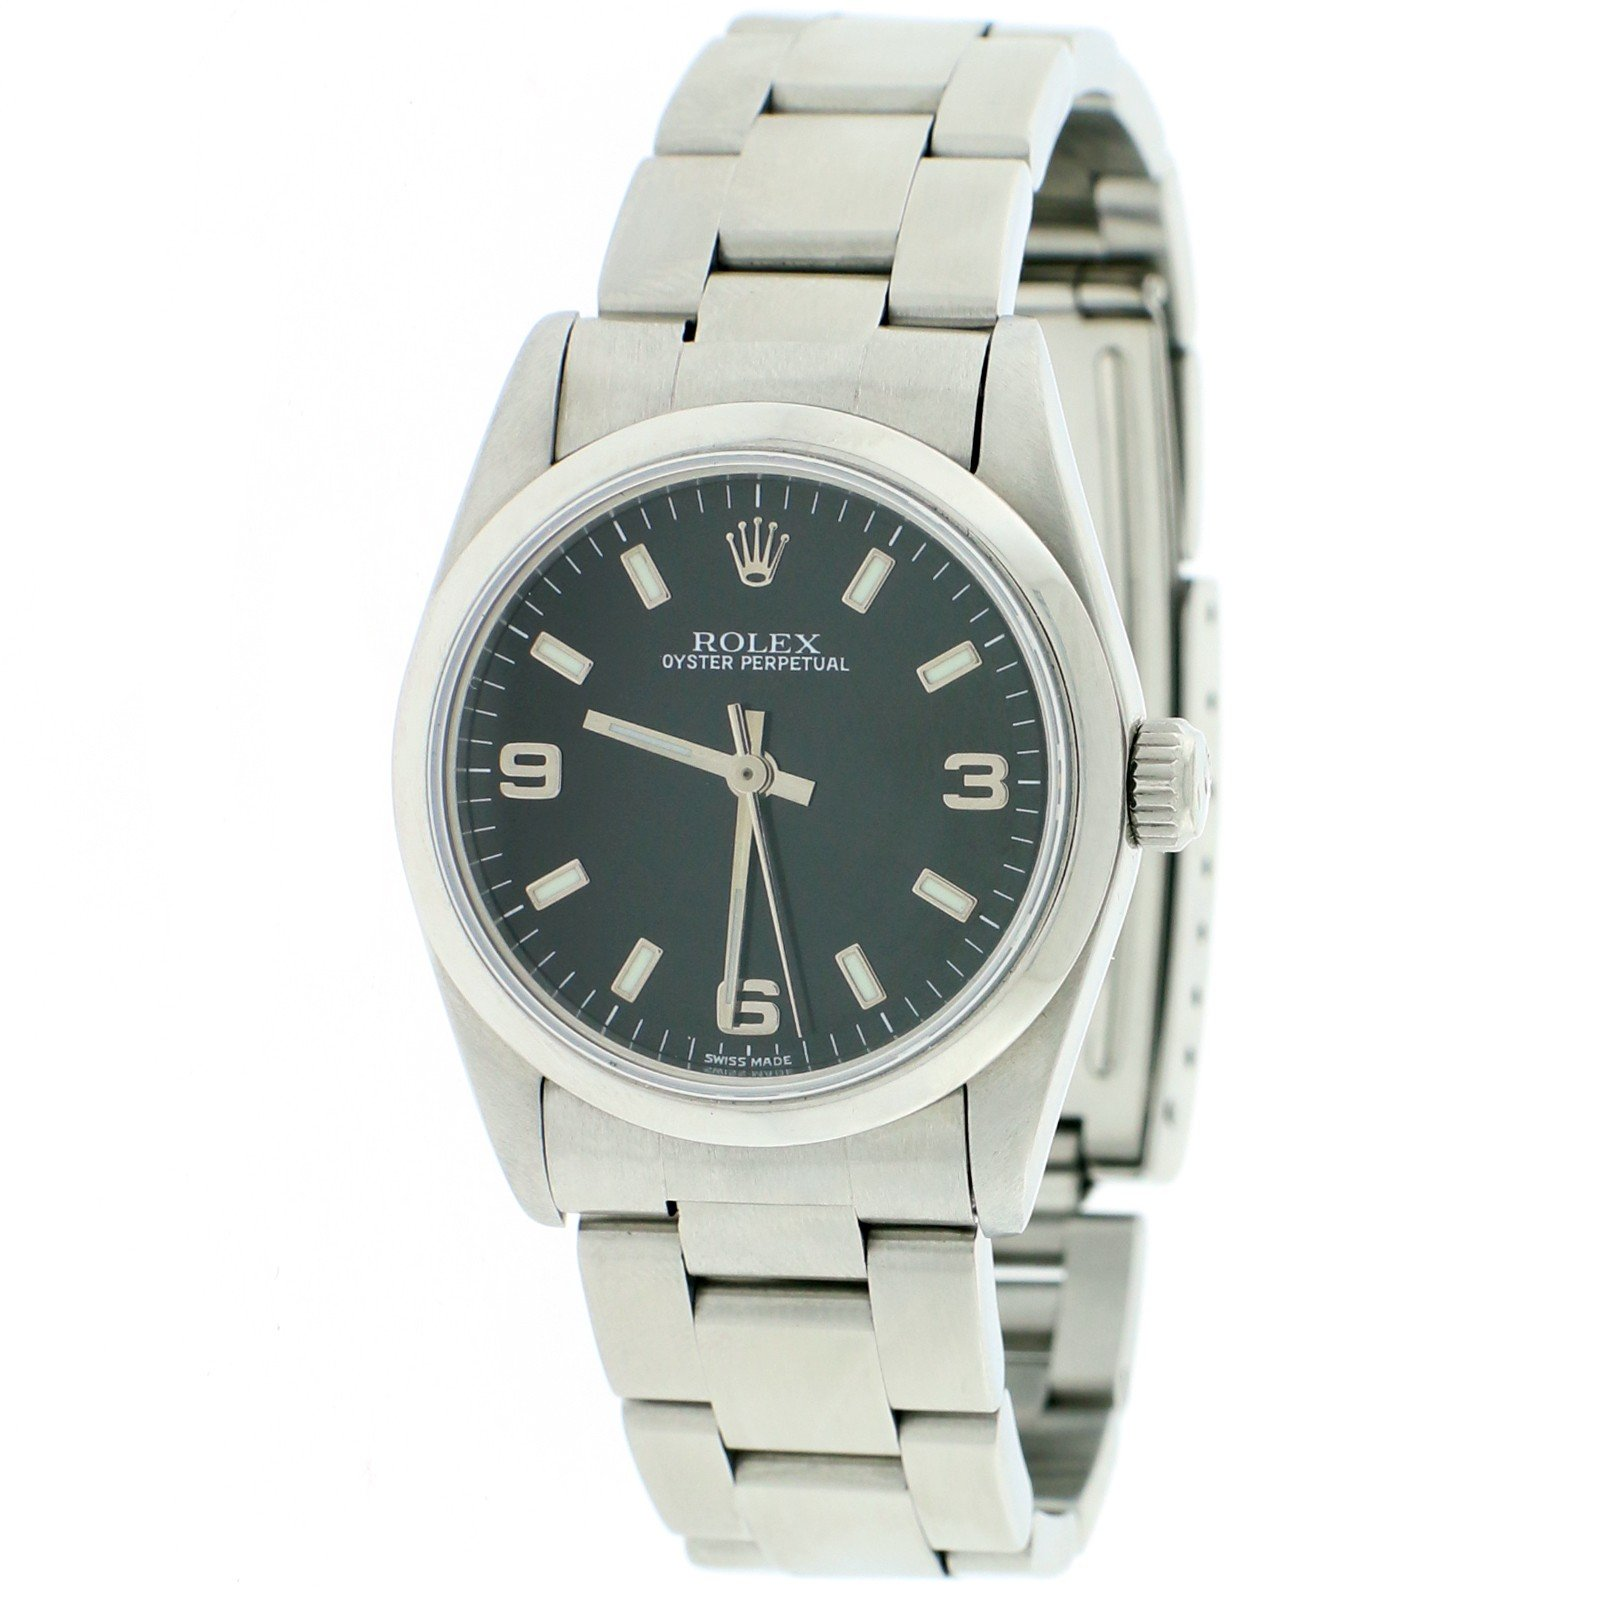 Rolex Oyster Perpetual automatic-self-wind womens Watch 67480 (Certified Pre-owned)